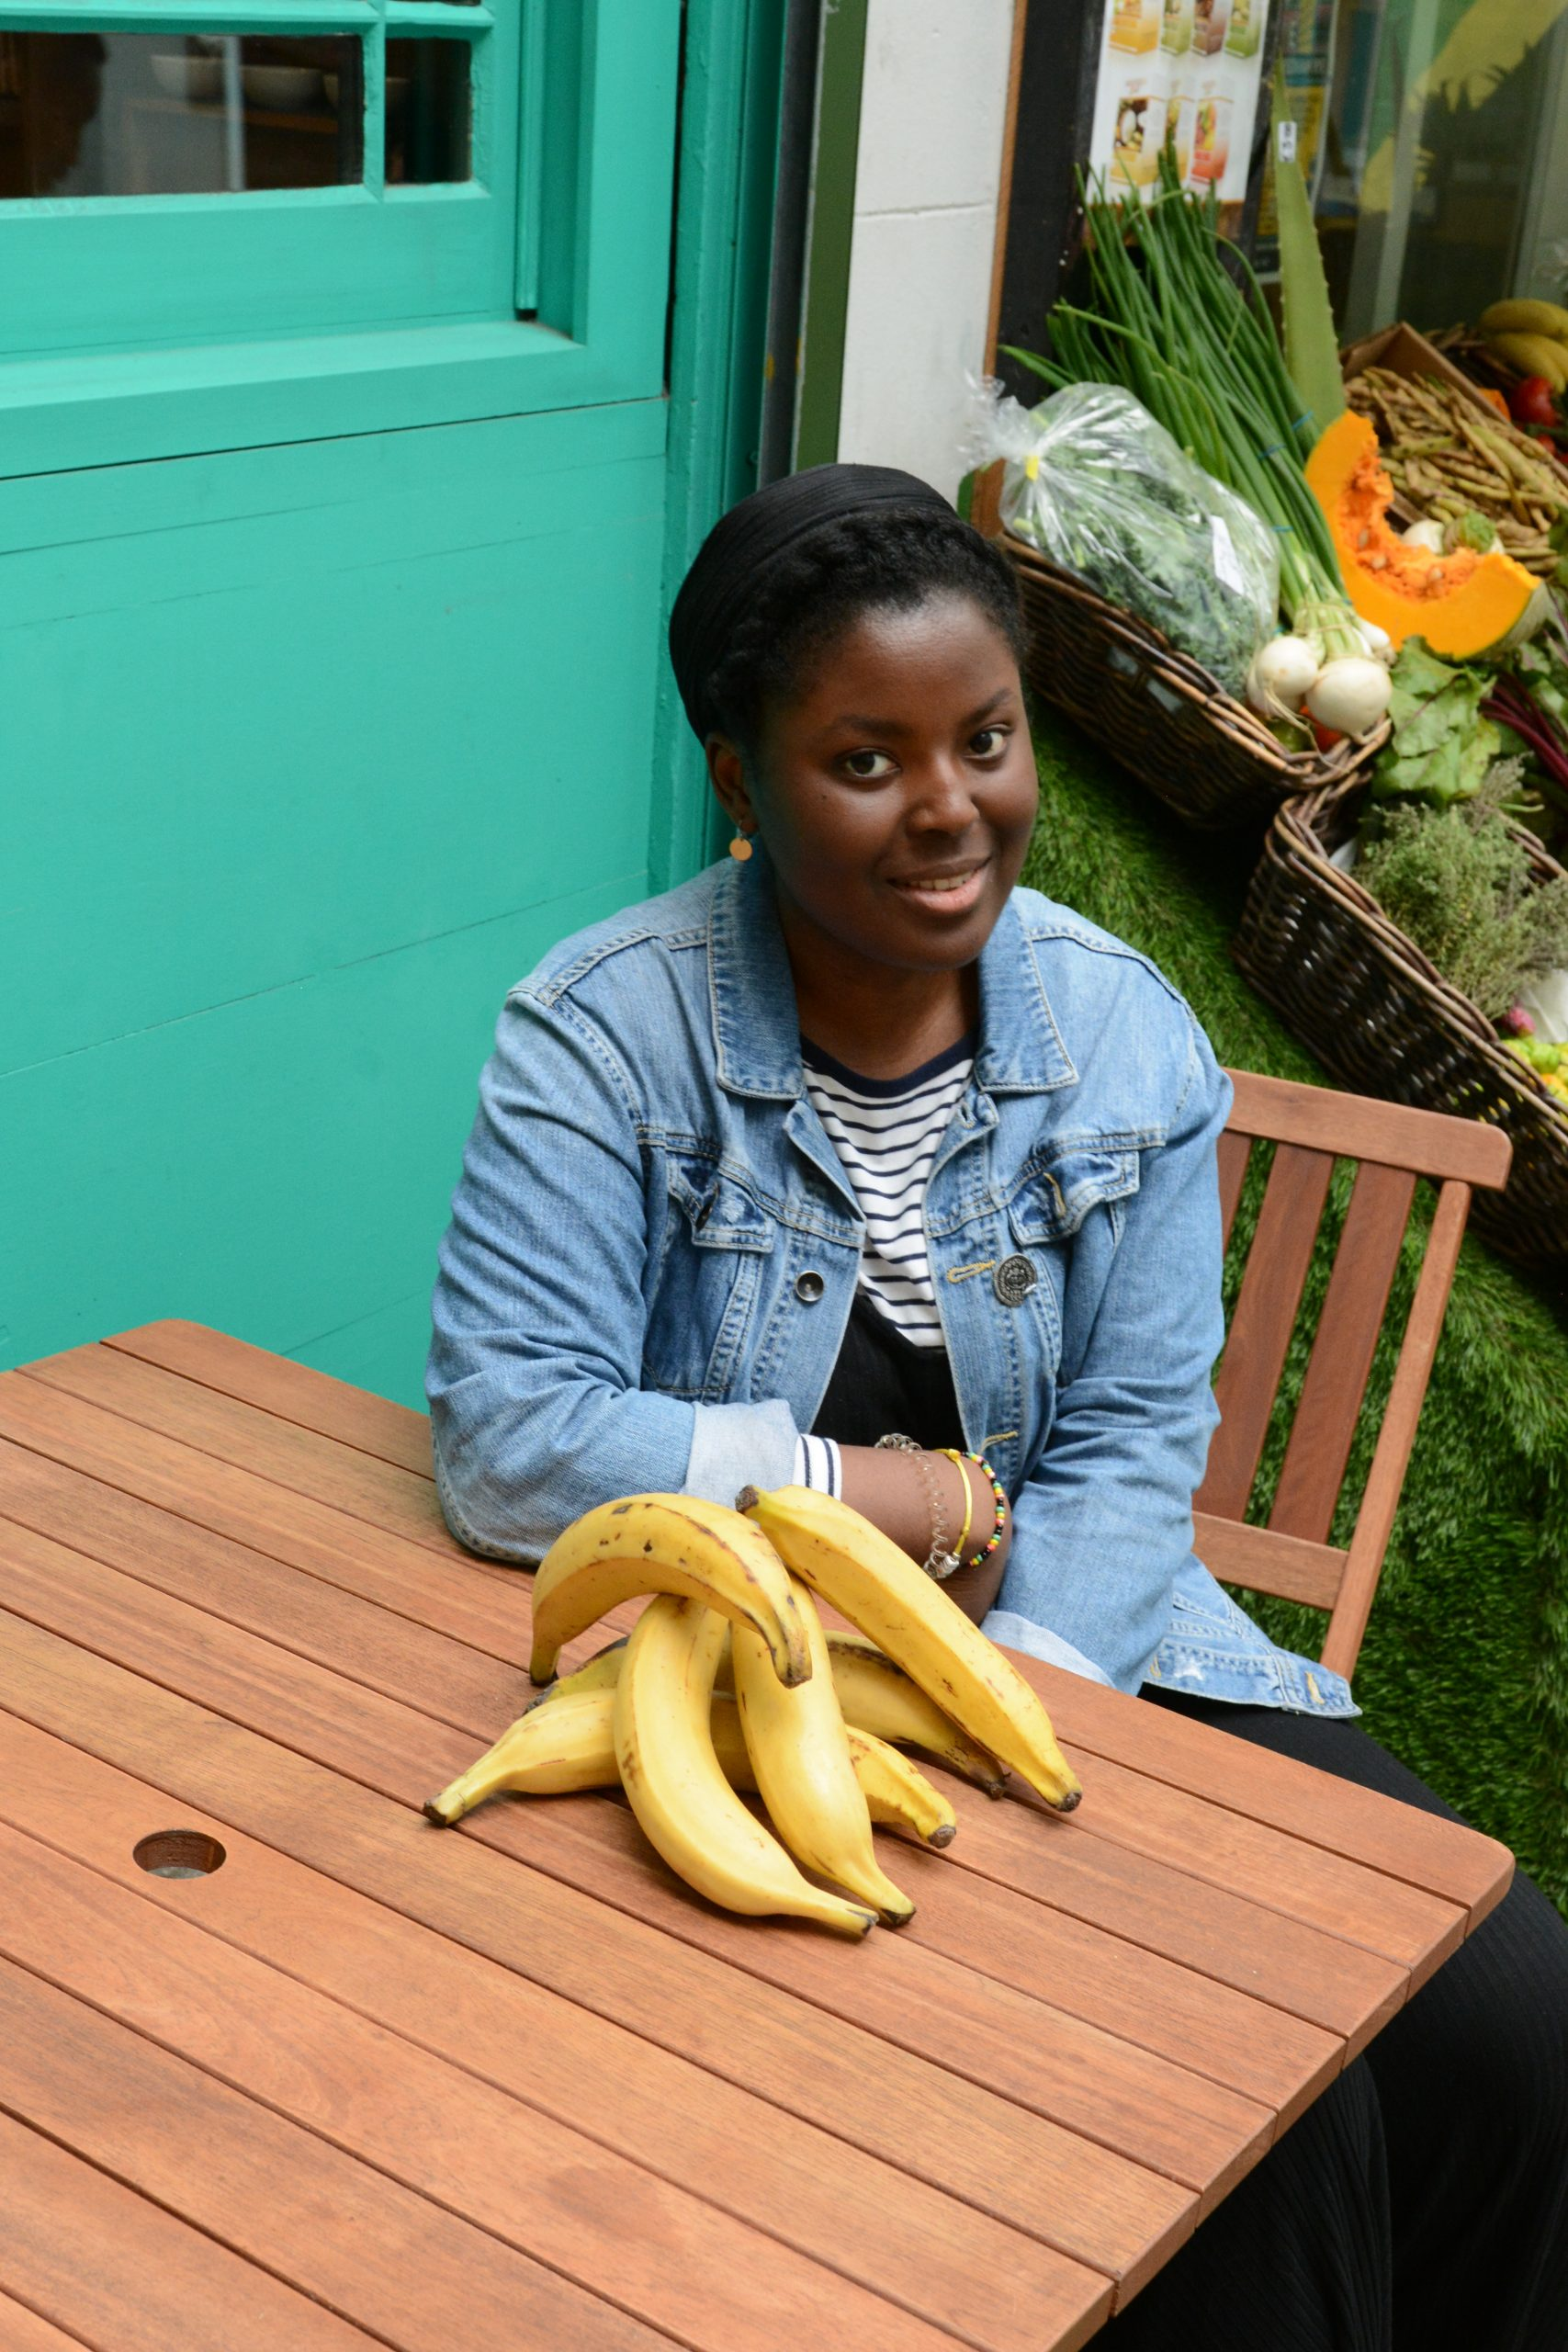 Tomi Makanjuola sits at a table. In front of her is a big bunch of plantains. Behind her there seems to be a fruit and veg stand.